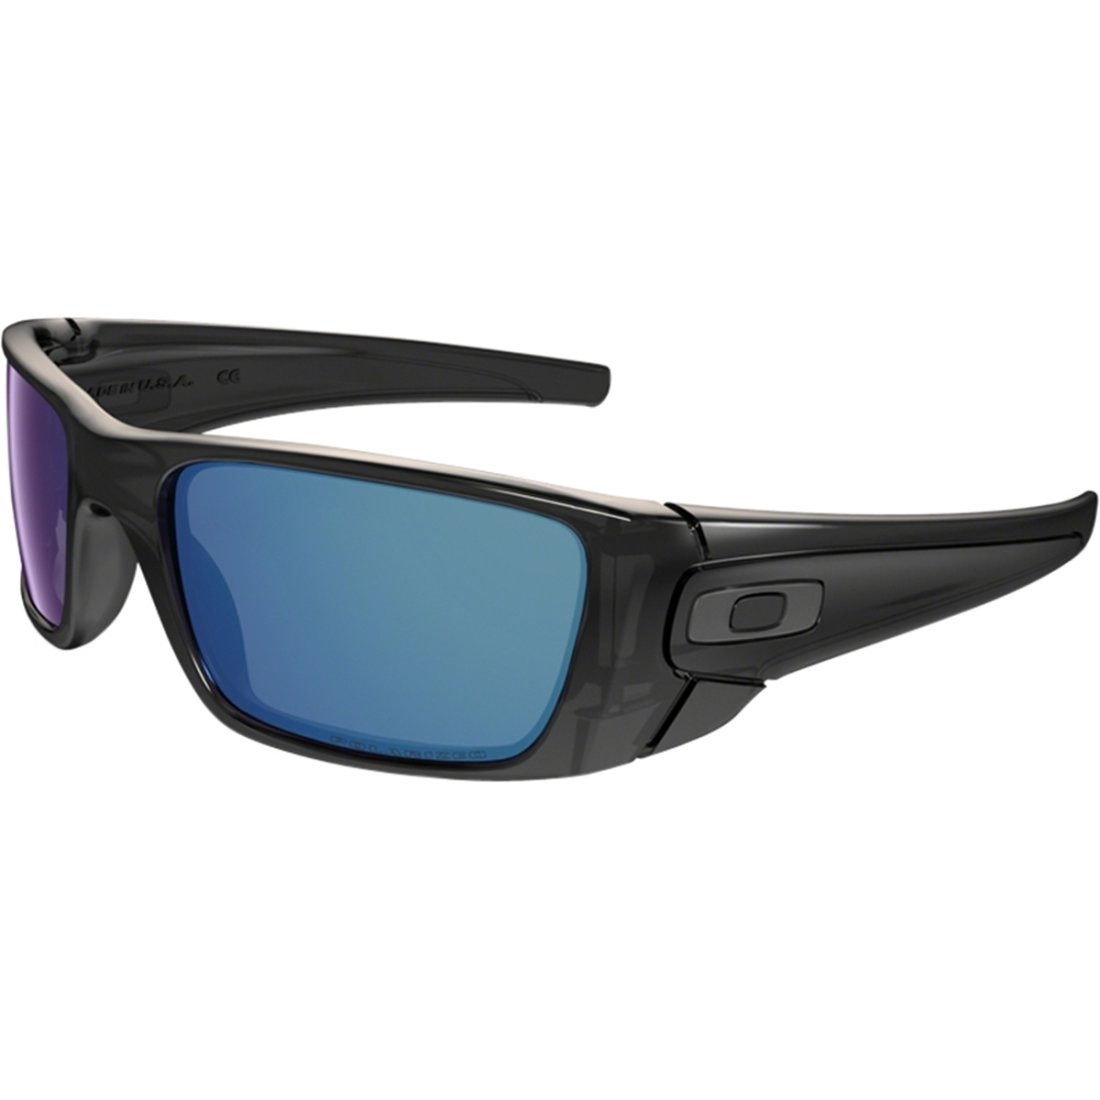 b4df4cfab1 OAKLEY Fuel Cell Polished Black   Ice Iridium Polarized